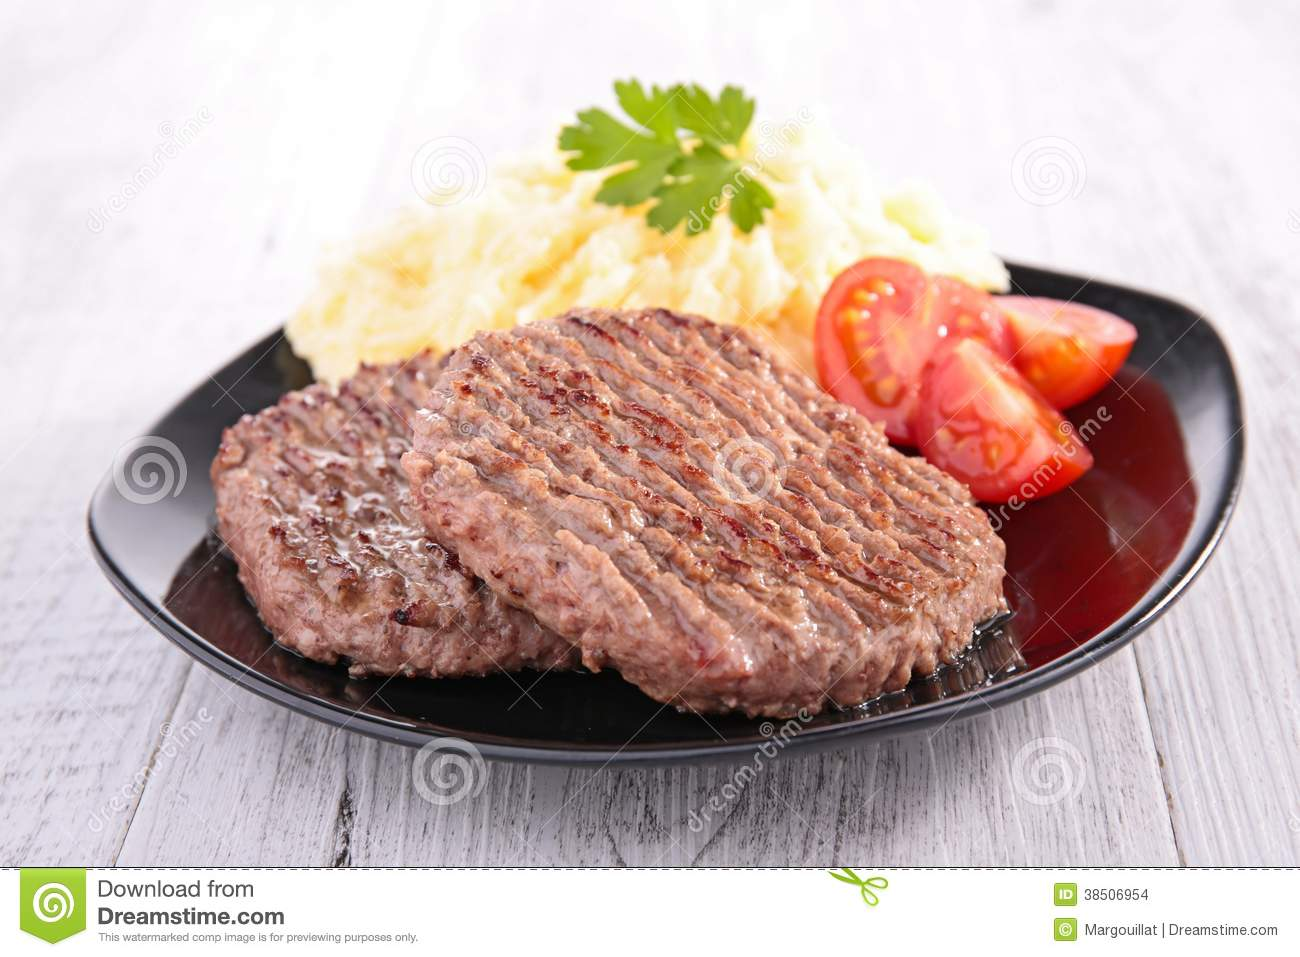 Beefsteak and puree